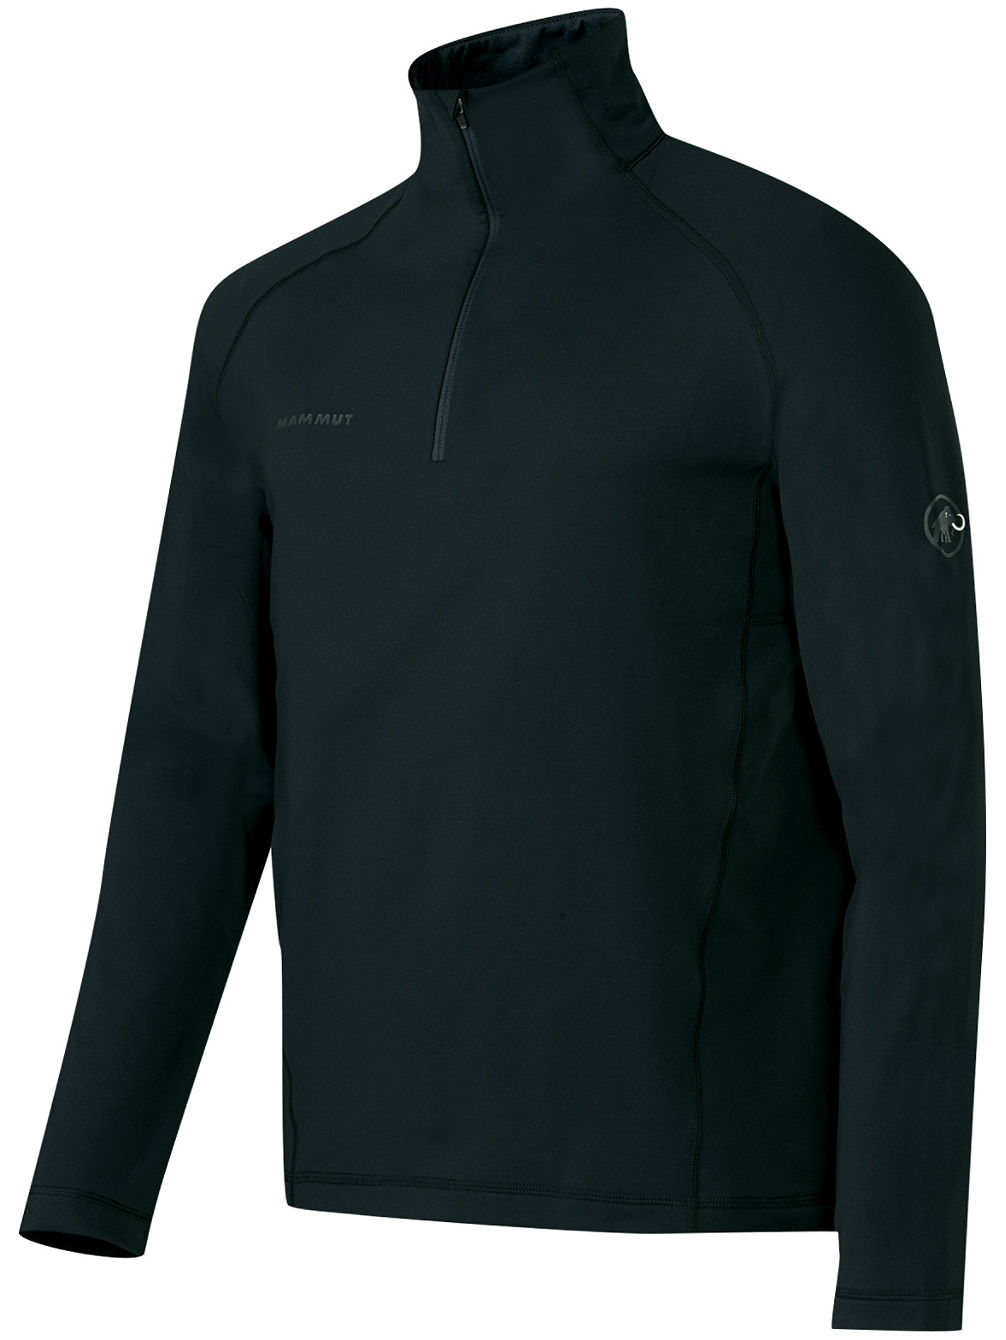 Snow Ml Half Zip Fleece Pullover